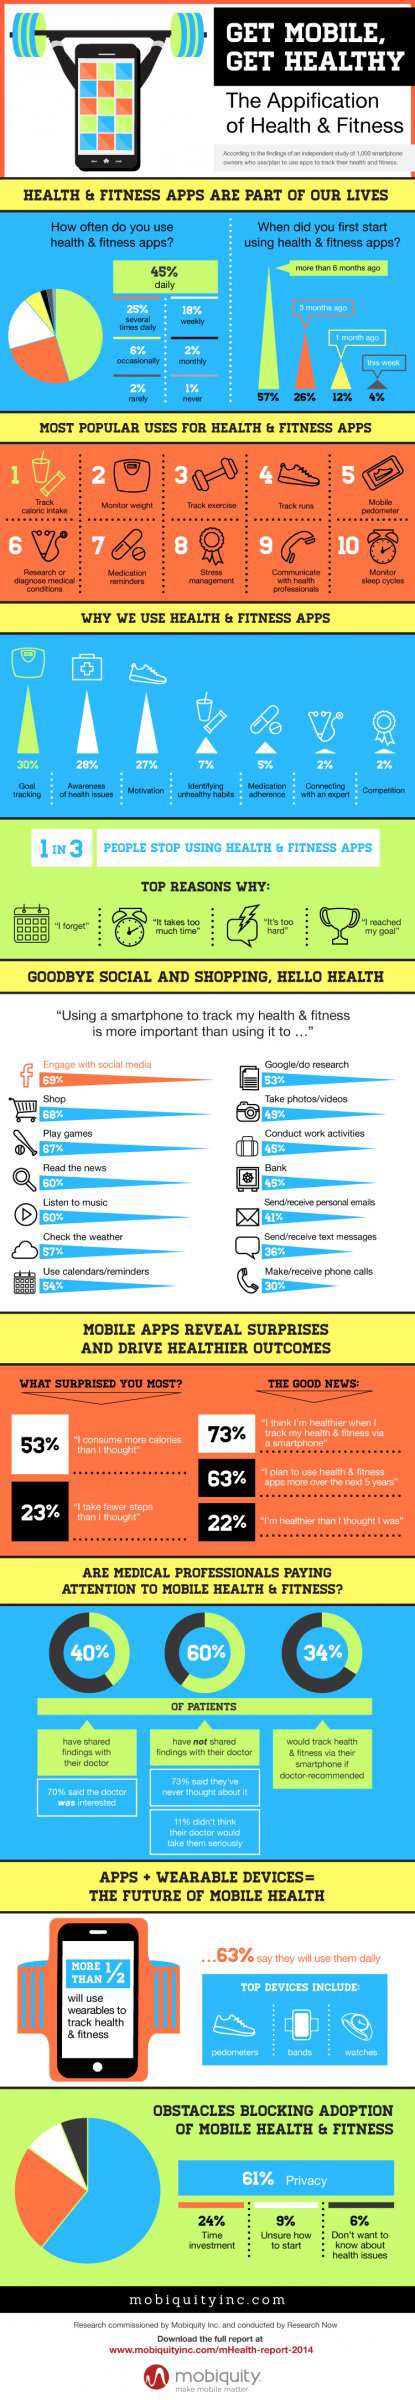 mobiquity_infographic